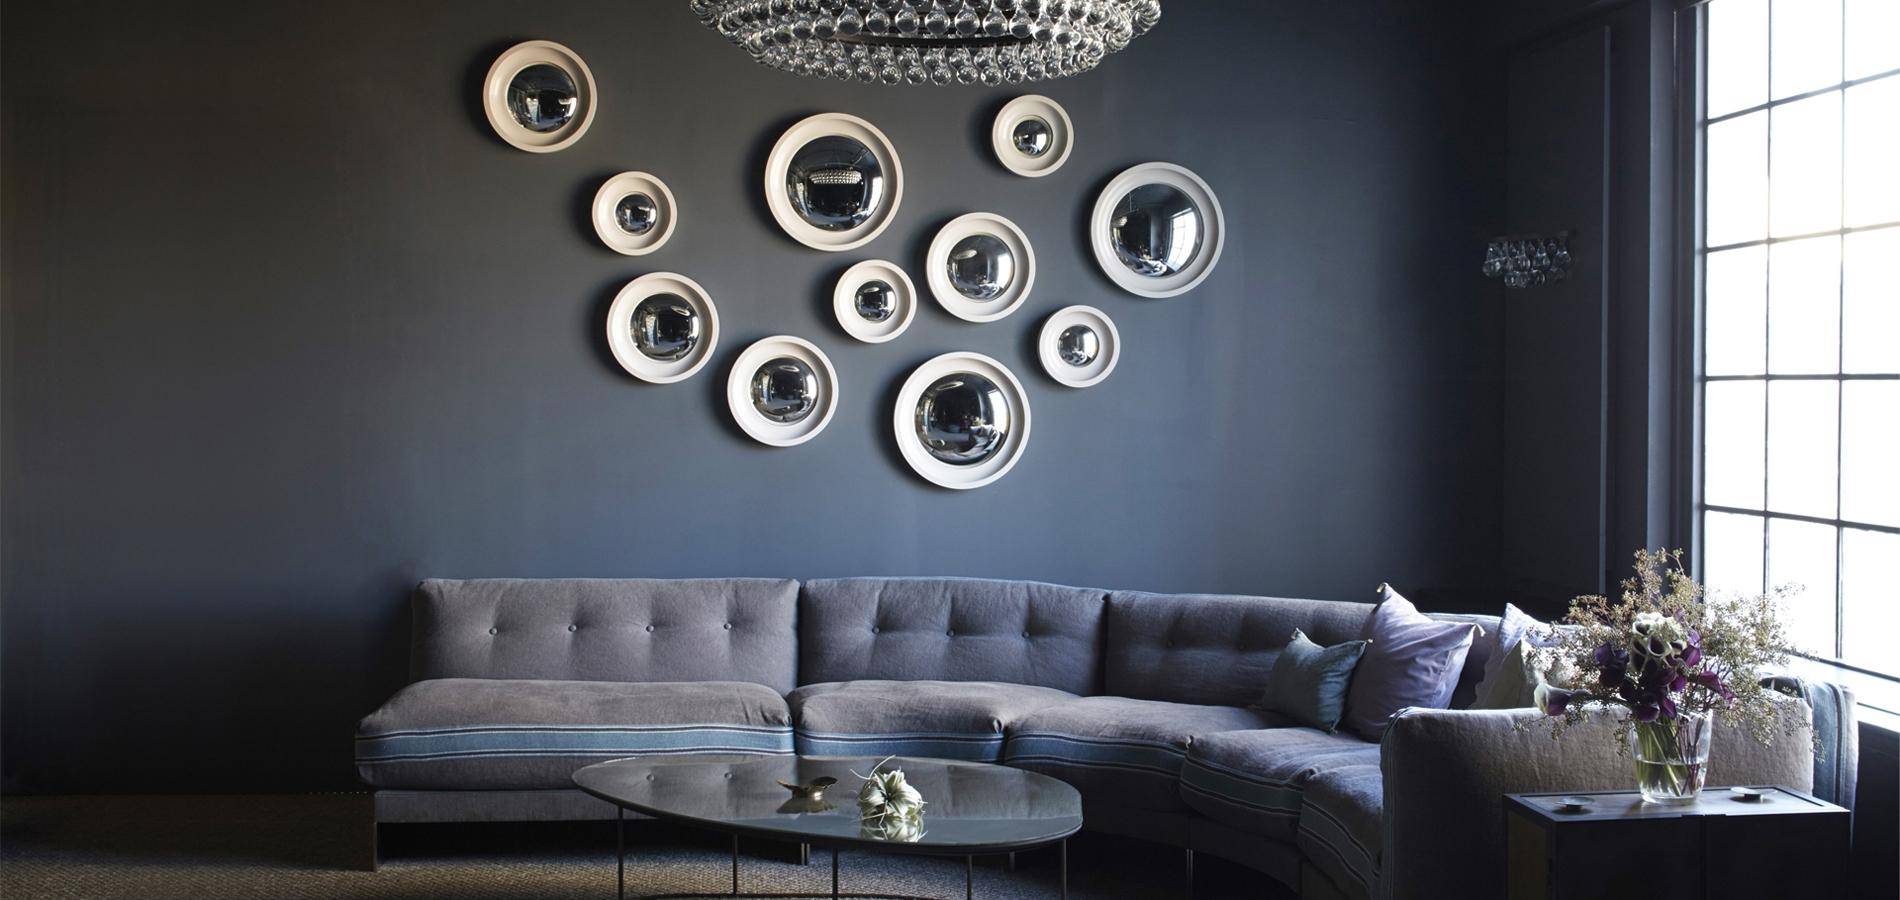 Comment bien utiliser le miroir en d co madame figaro for Decoration miroir